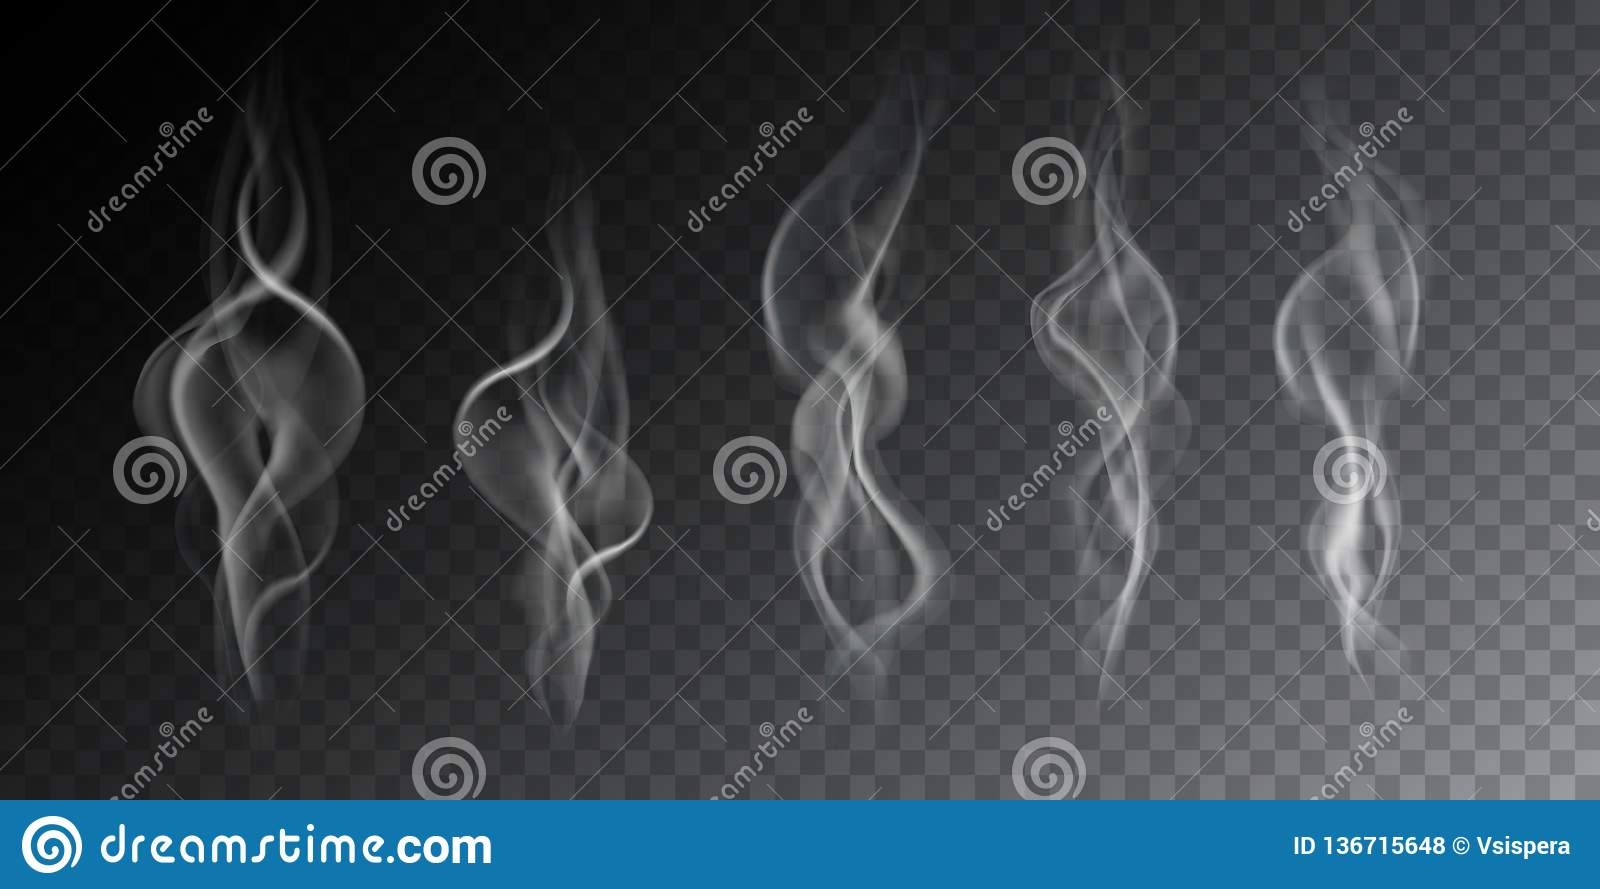 Realistic illustration of haze, cigarette smoke or steam over a hot drink, isolated on a transparent background, vector